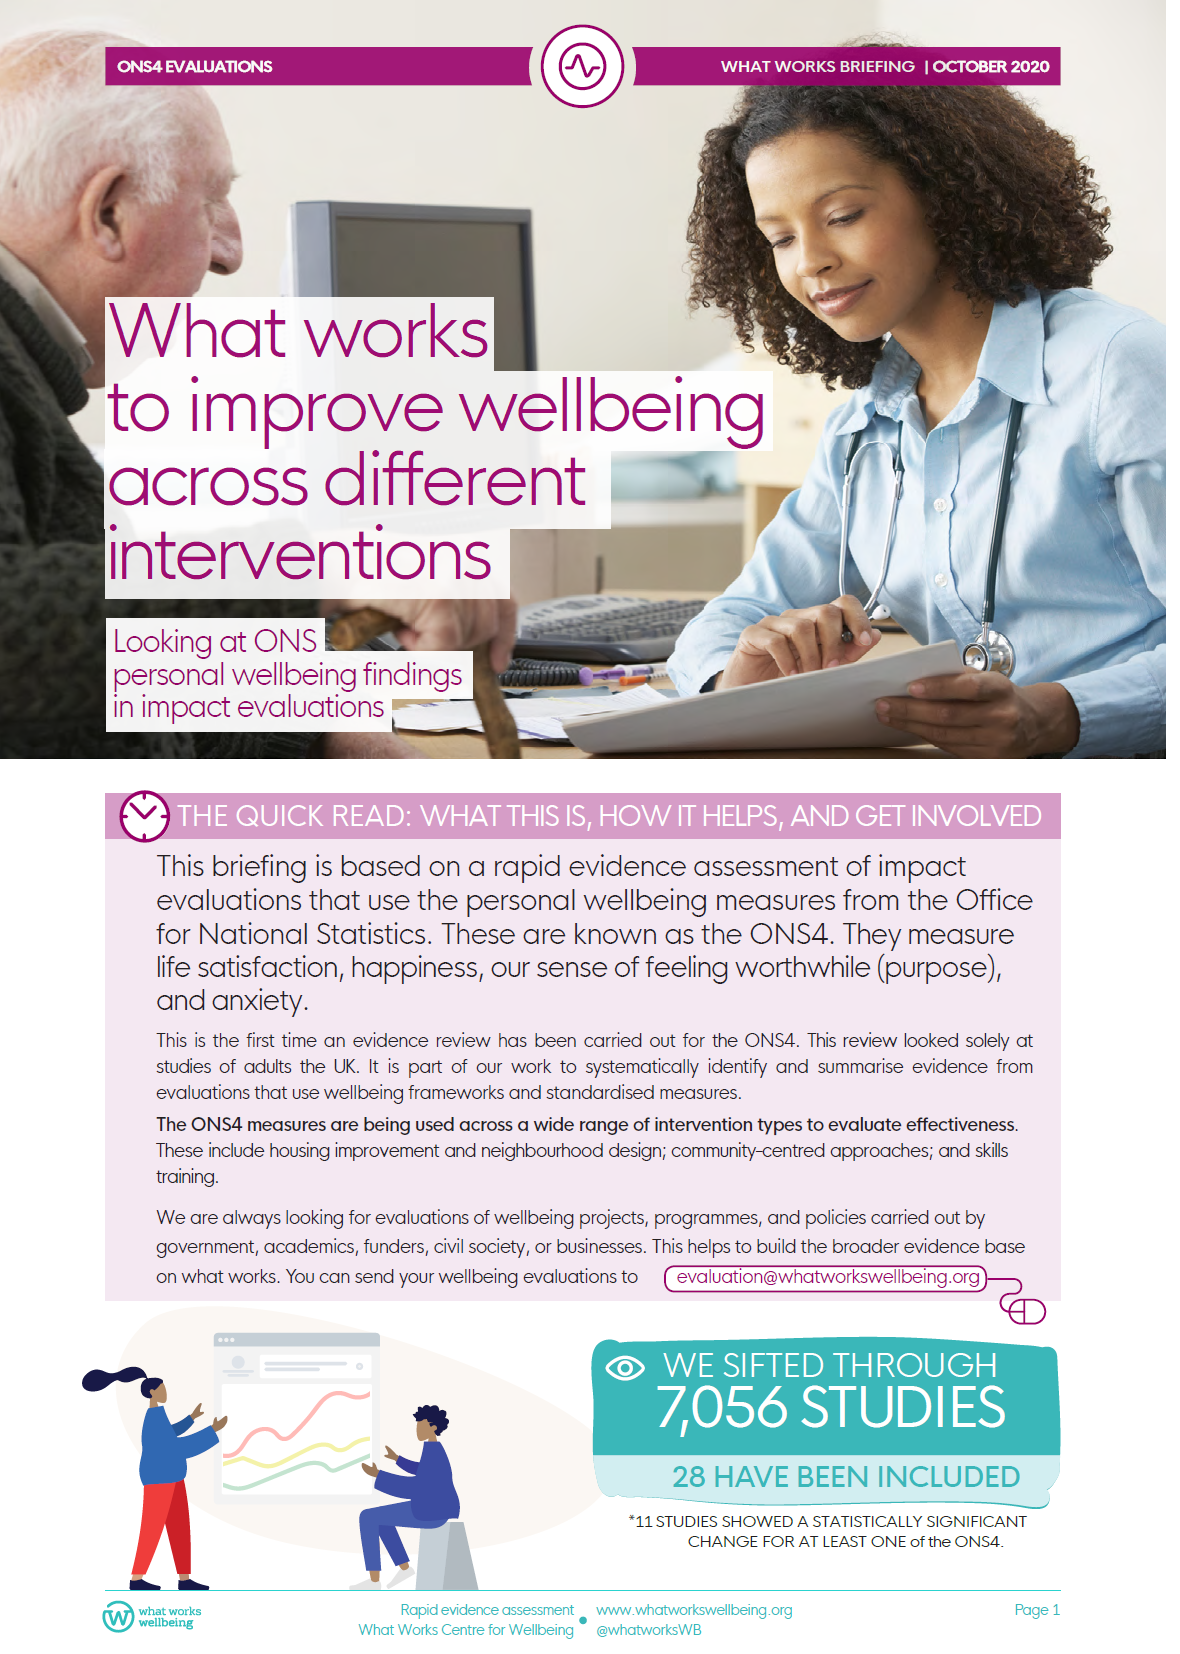 What works to improve wellbeing across different interventions: looking at ONS personal wellbeing findings in impact evaluations